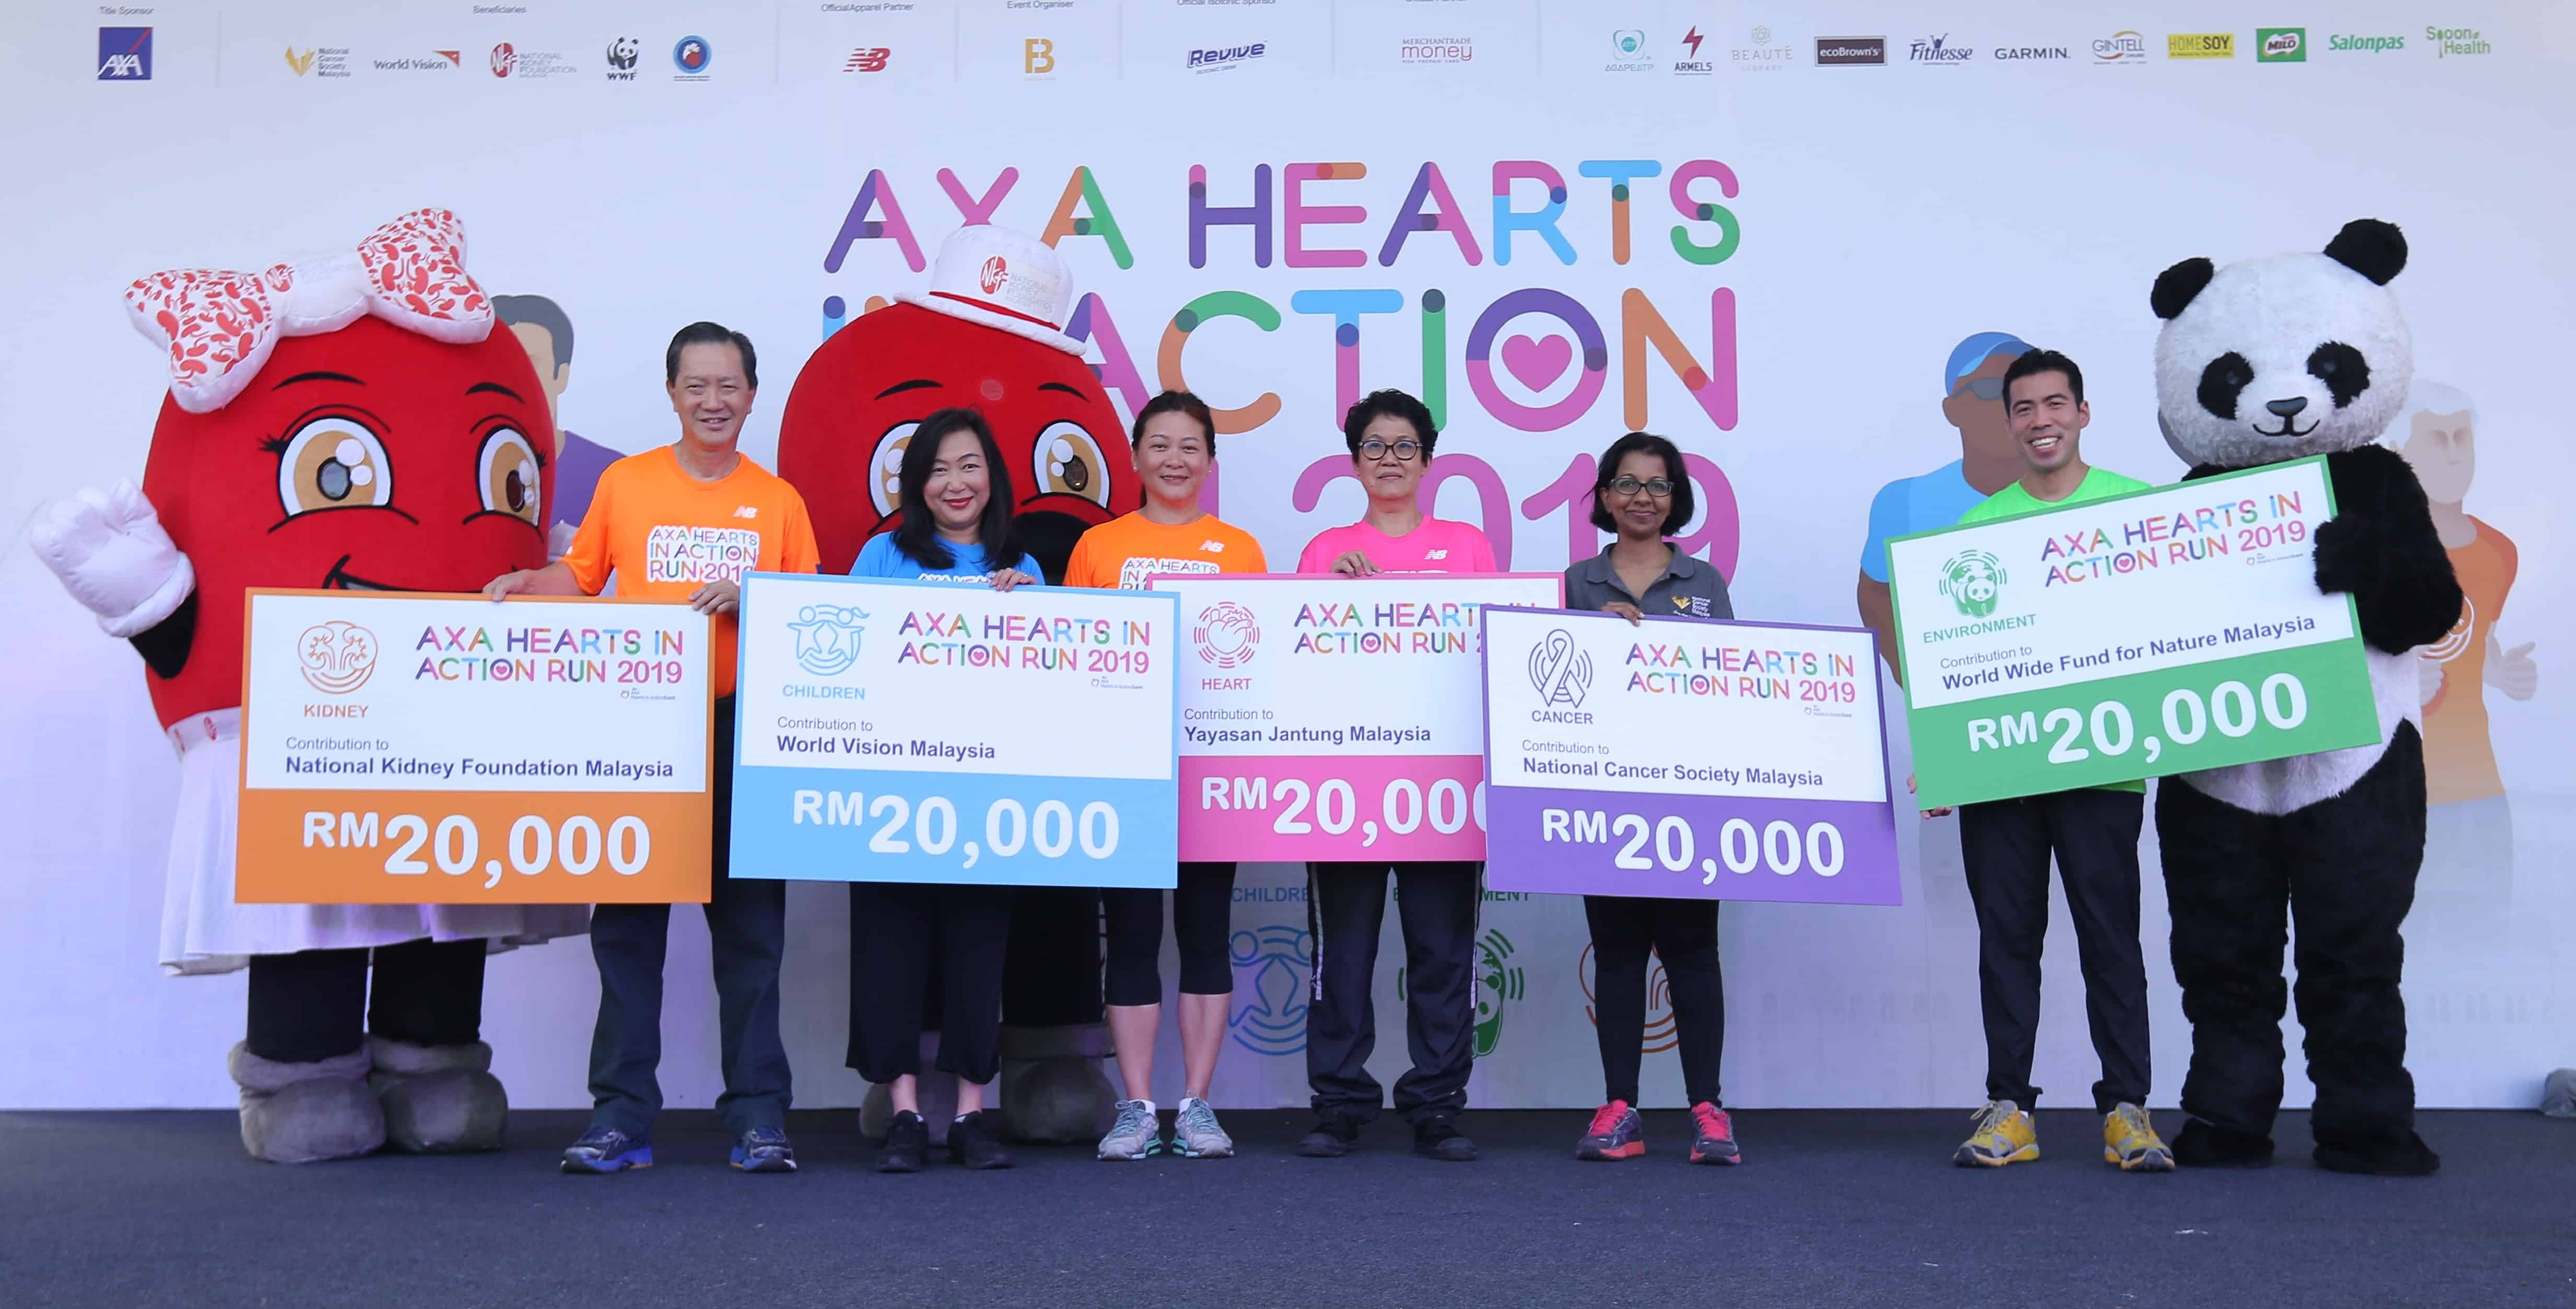 AXA Empowered 6,500 Runners to Contribute to 5 Good Causes